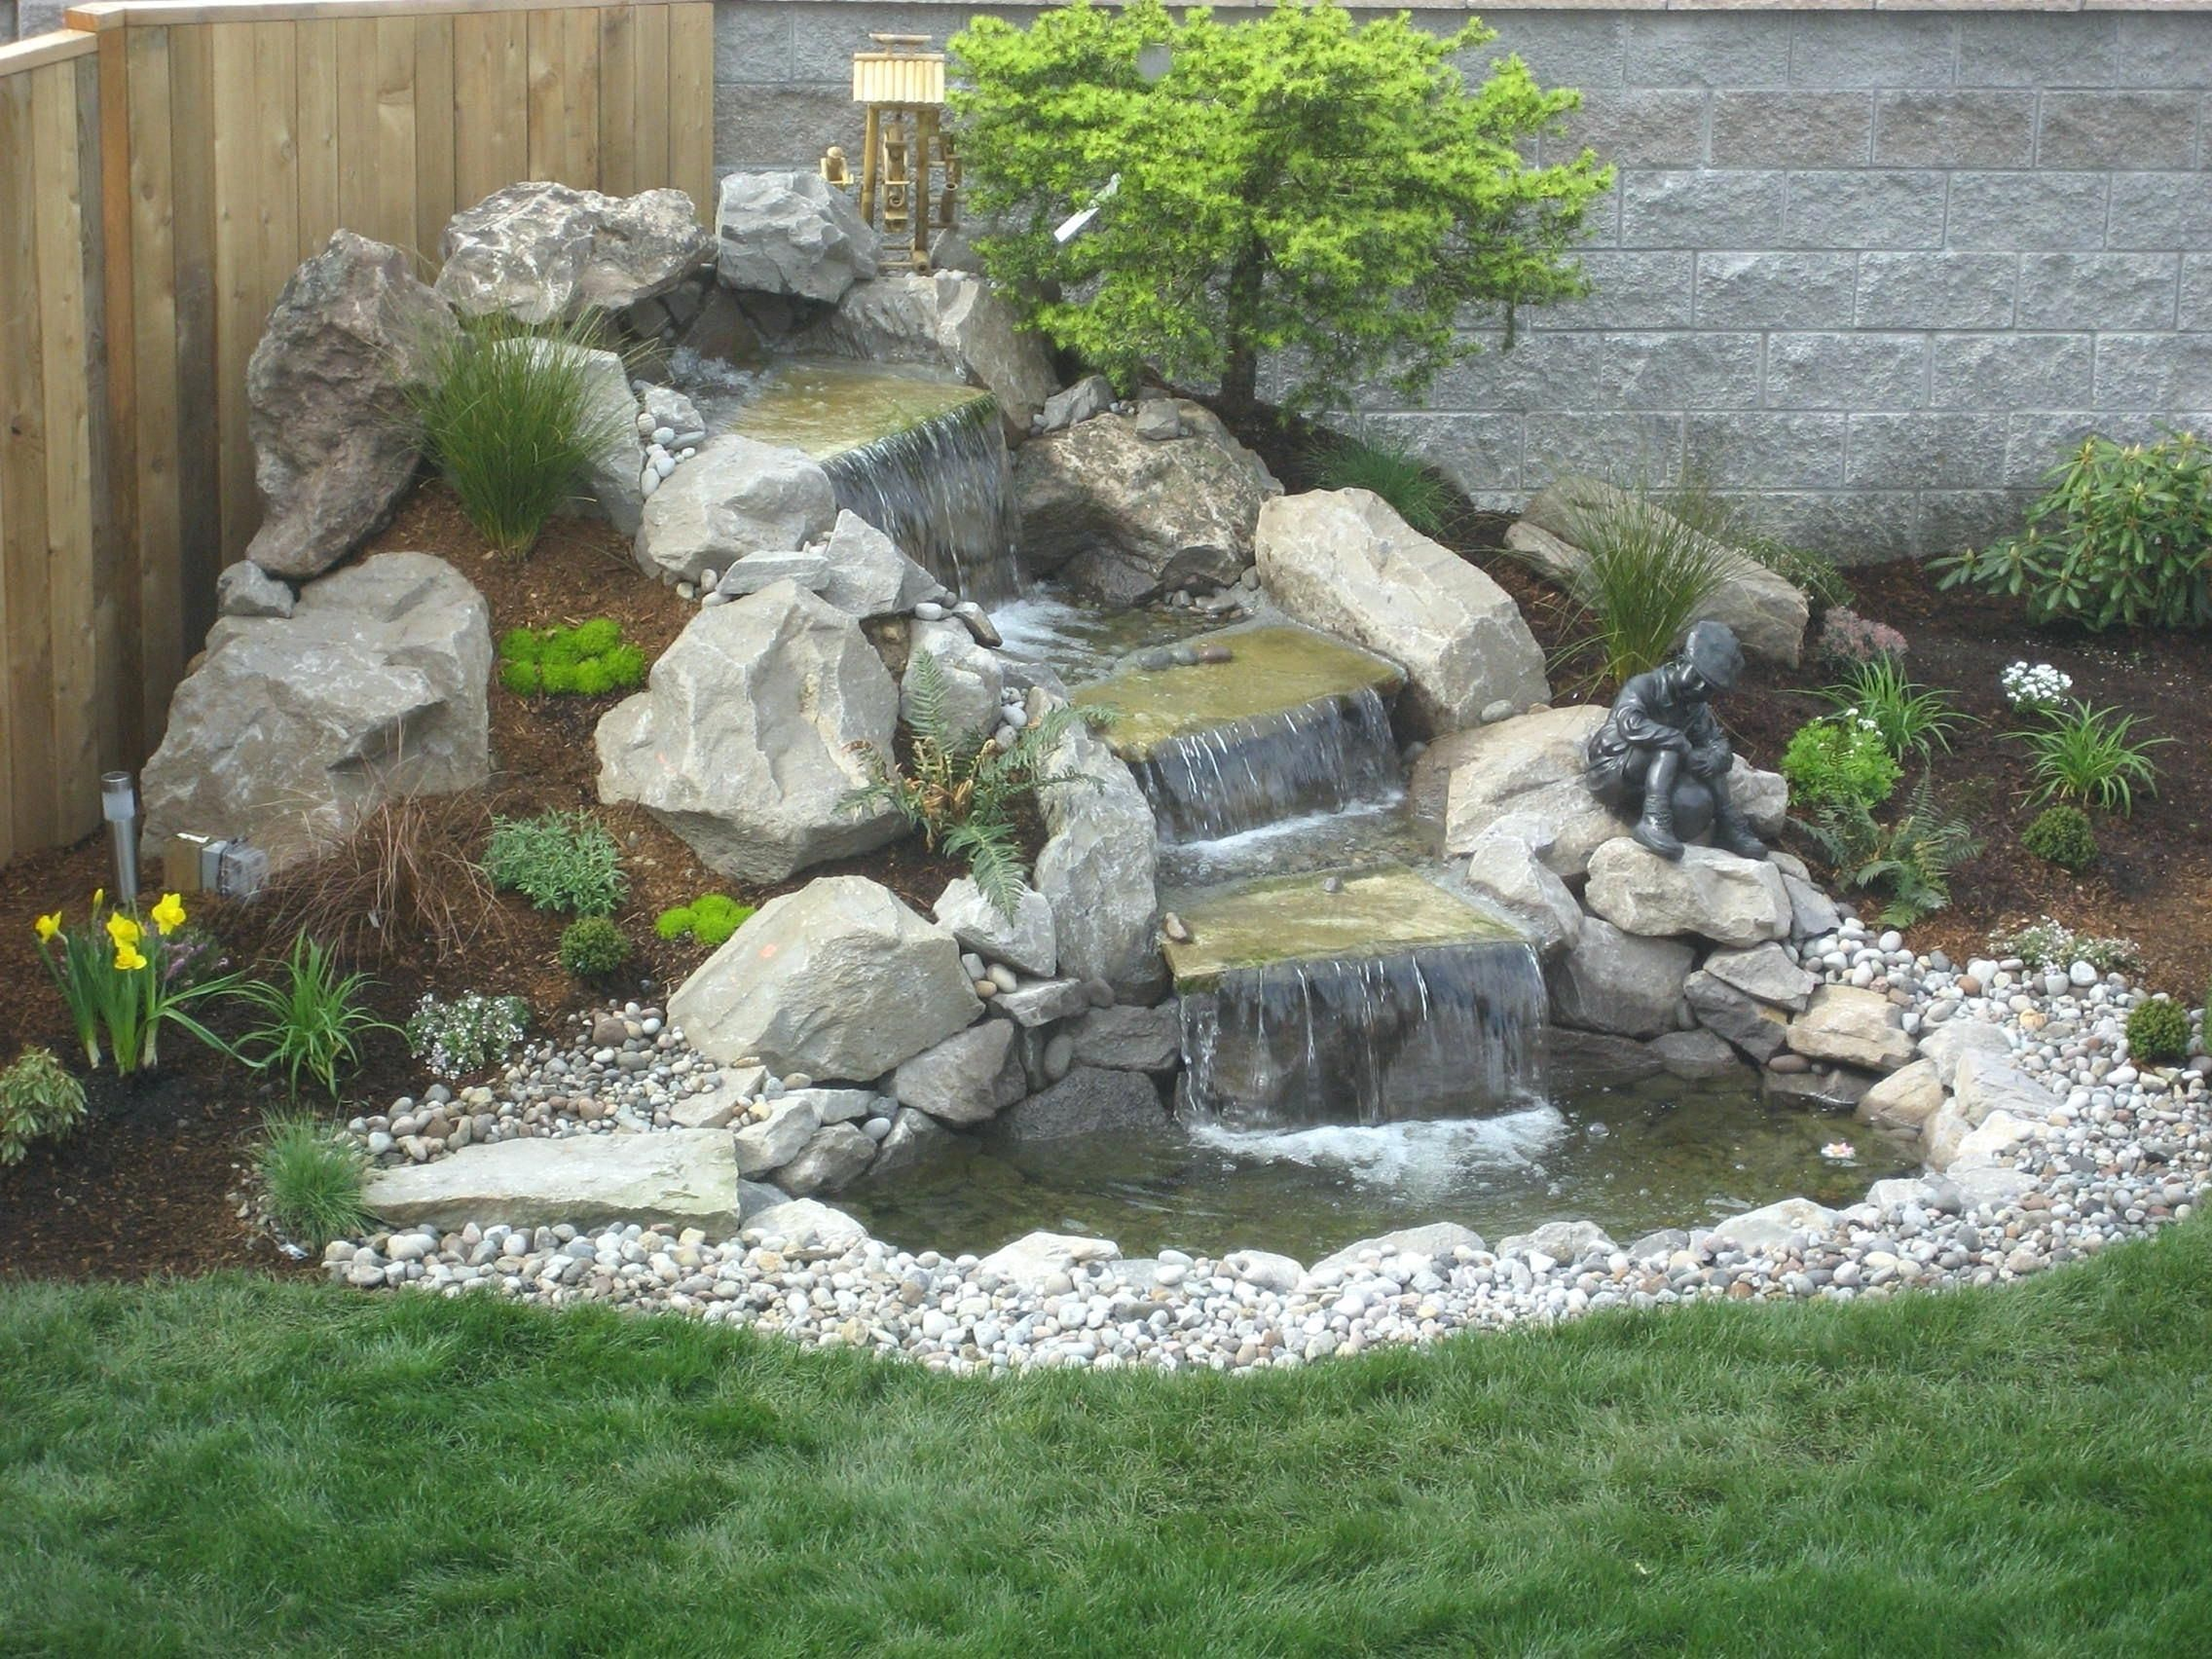 10 Best Pictures Waterfall Ideas To Inspire Your Garden Freshouz Com Water Features In The Garden Waterfalls Backyard Waterfall Landscaping